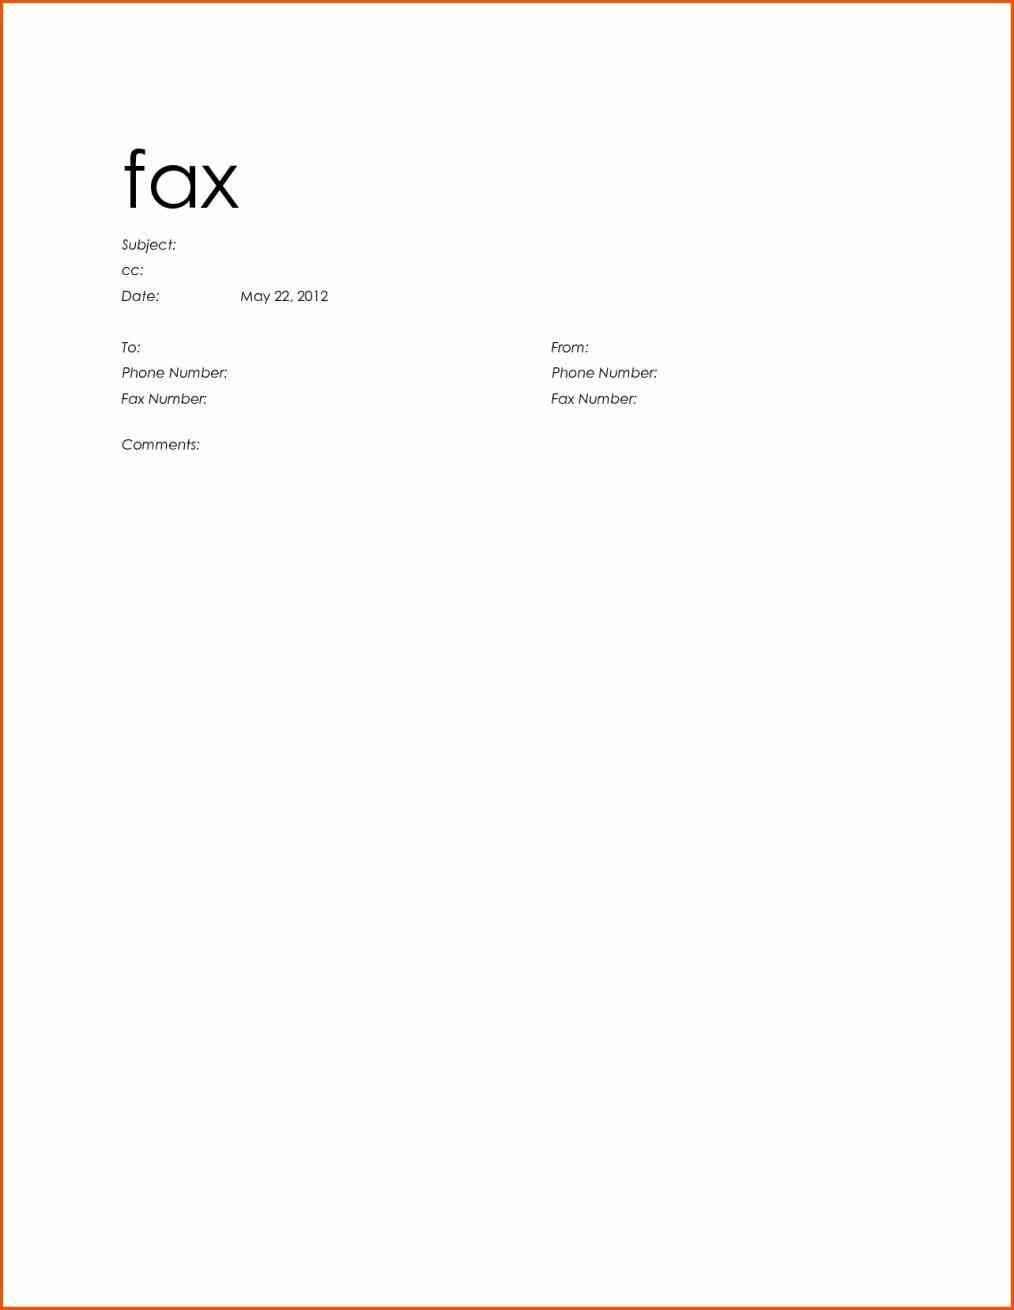 Basic Ms Word Fax Cover Sheet Fax Cover Need A Template Use This